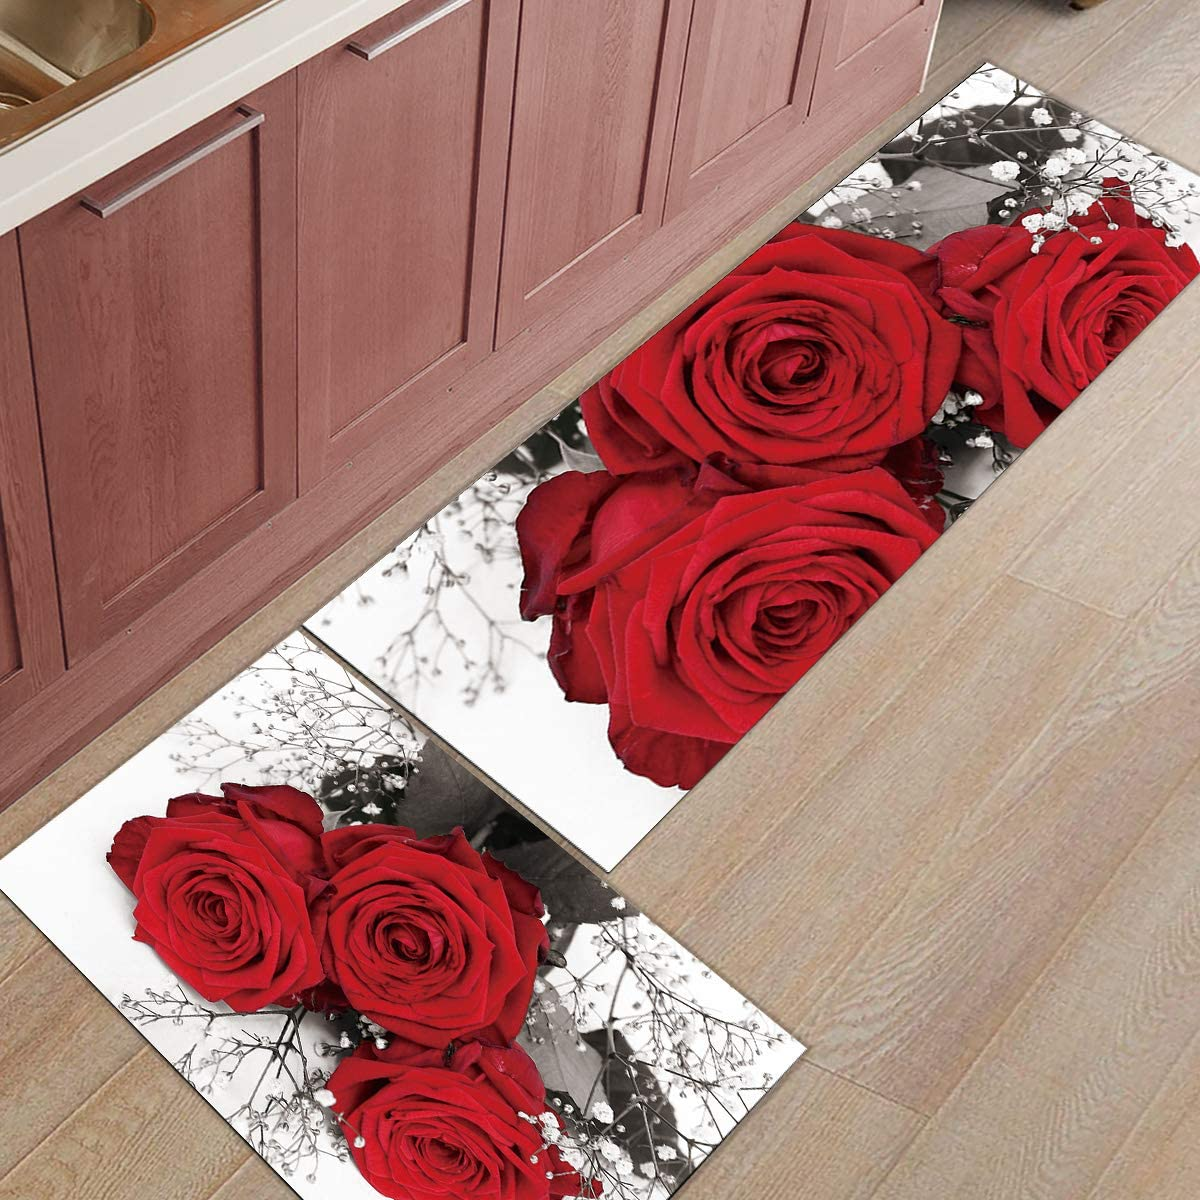 Max 55% OFF Fantasy Staring 2 Piece Kitchen famous Rug Romantic Red Set- Rose Dark